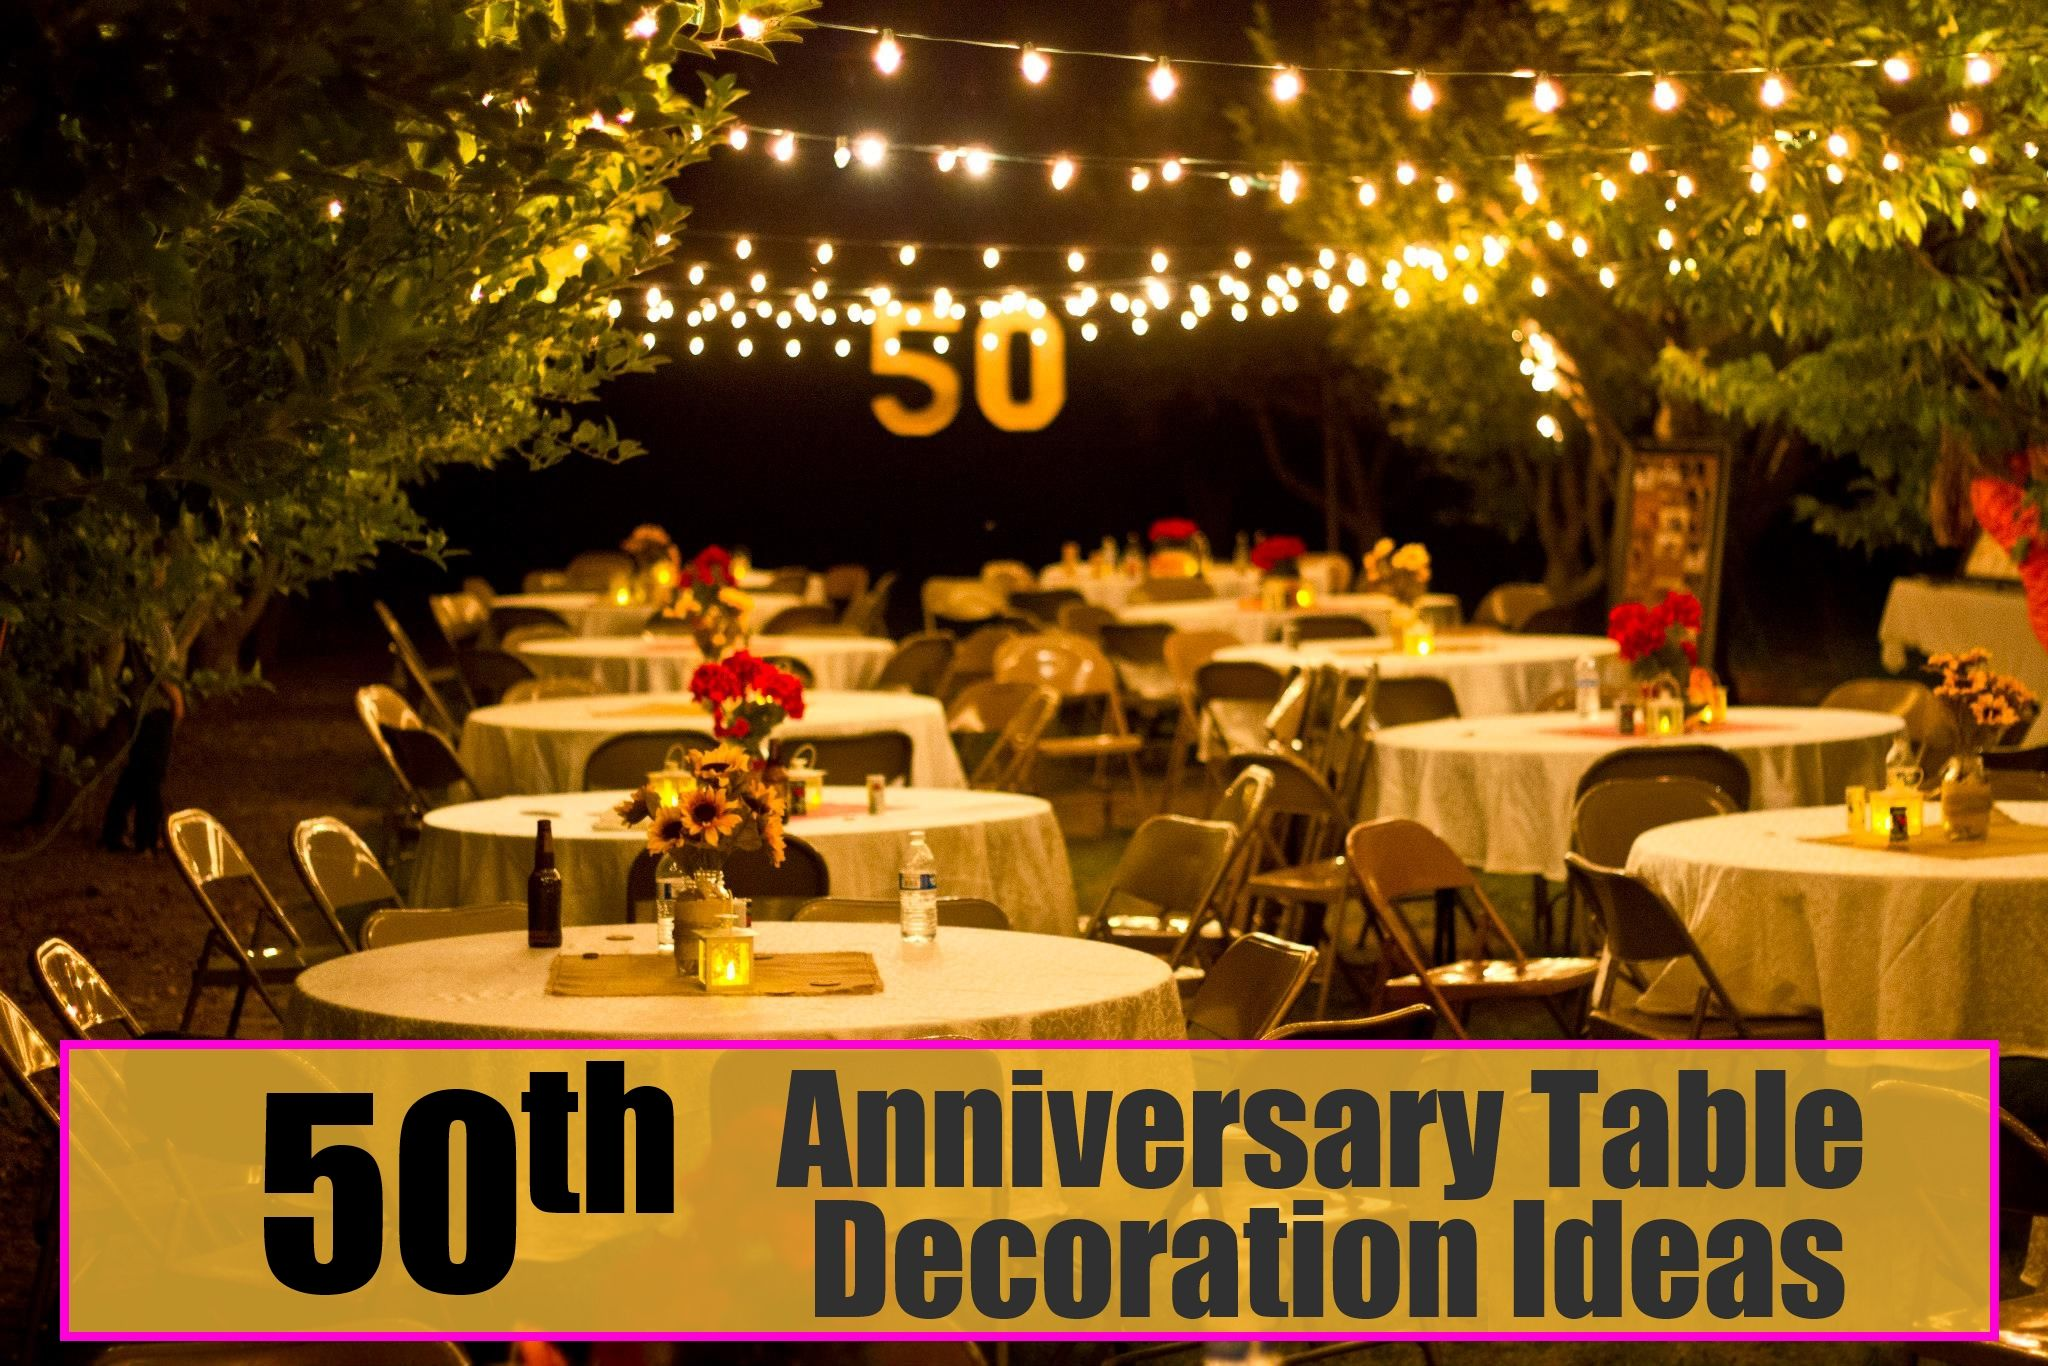 50th Anniversary Table Decoration Ideas Celebrations